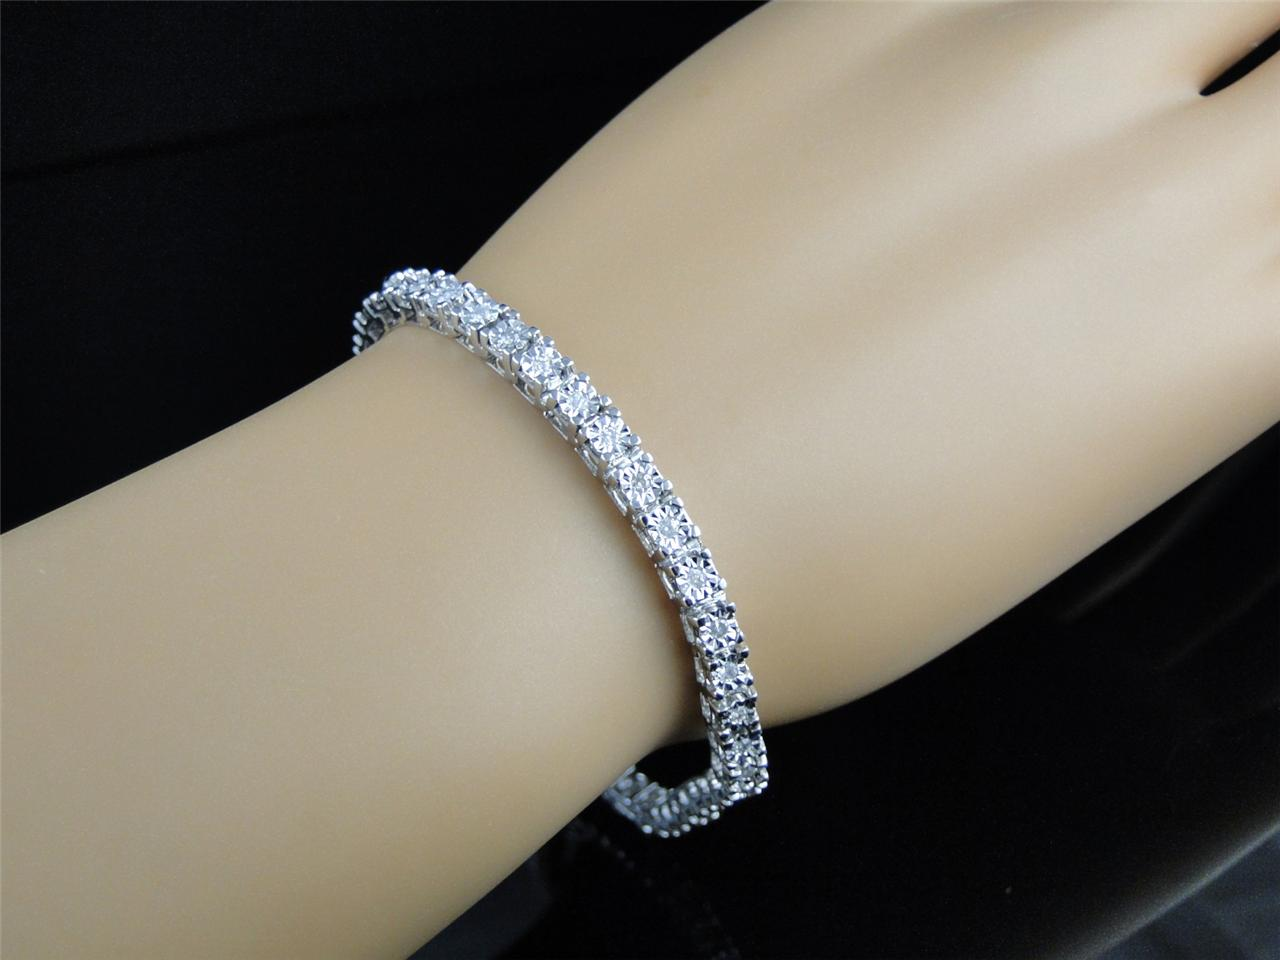 If This Bracelet Is Too For The Wrist We Recommend A Smaller Version Single Row 1 4 Carat Genuine Diamond With Sterling Silver And White